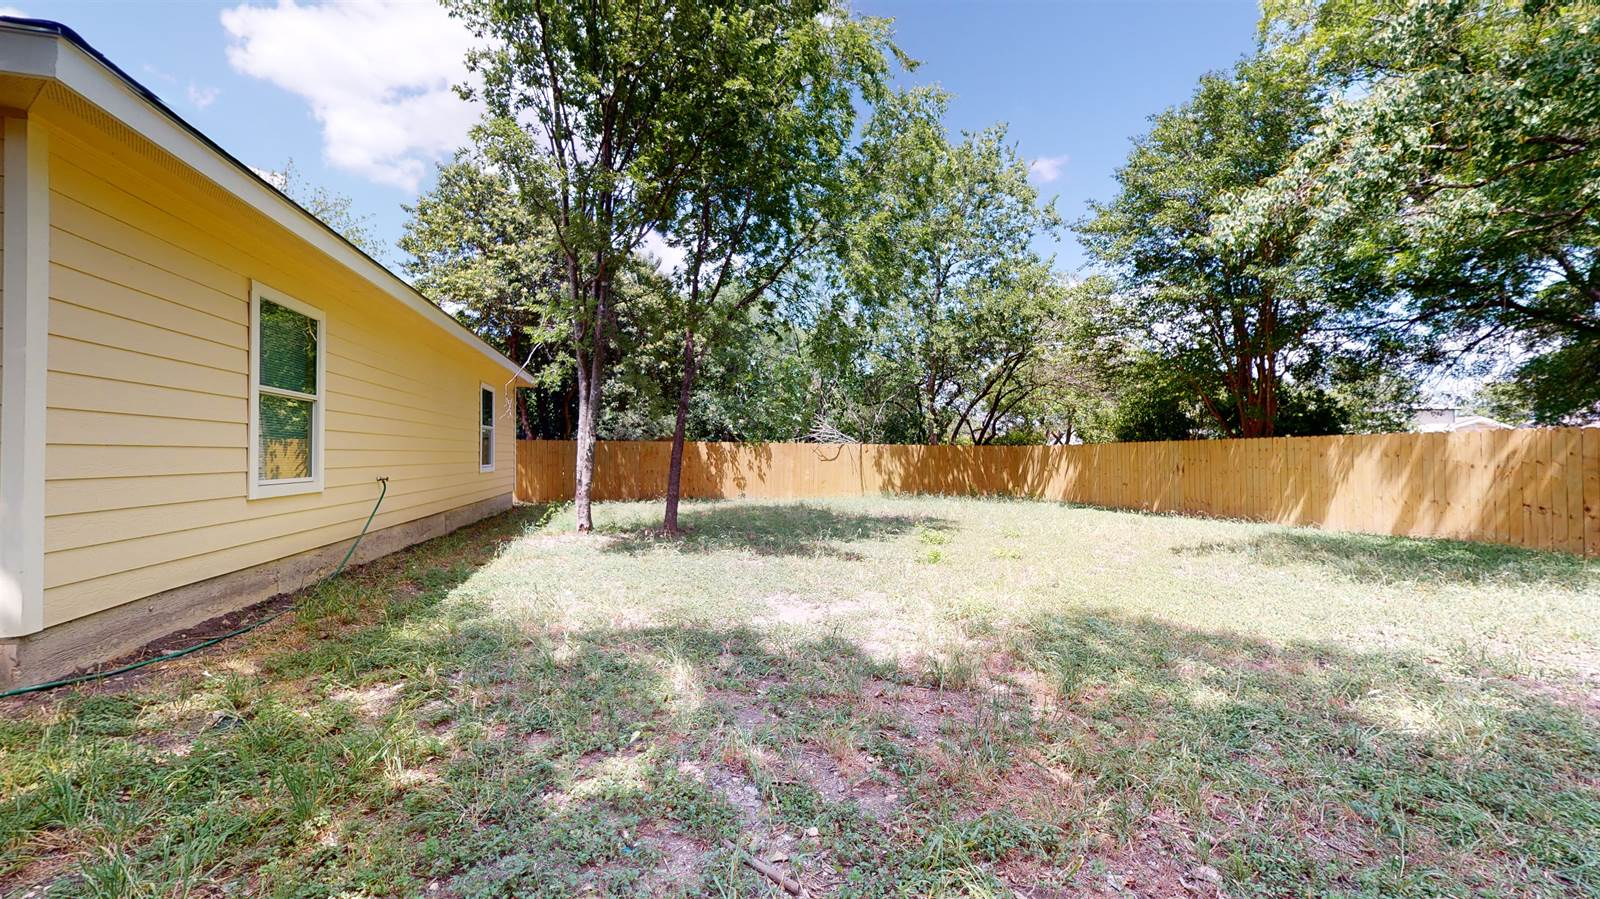 12802 Middle Ln, San Antonio, TX 78217